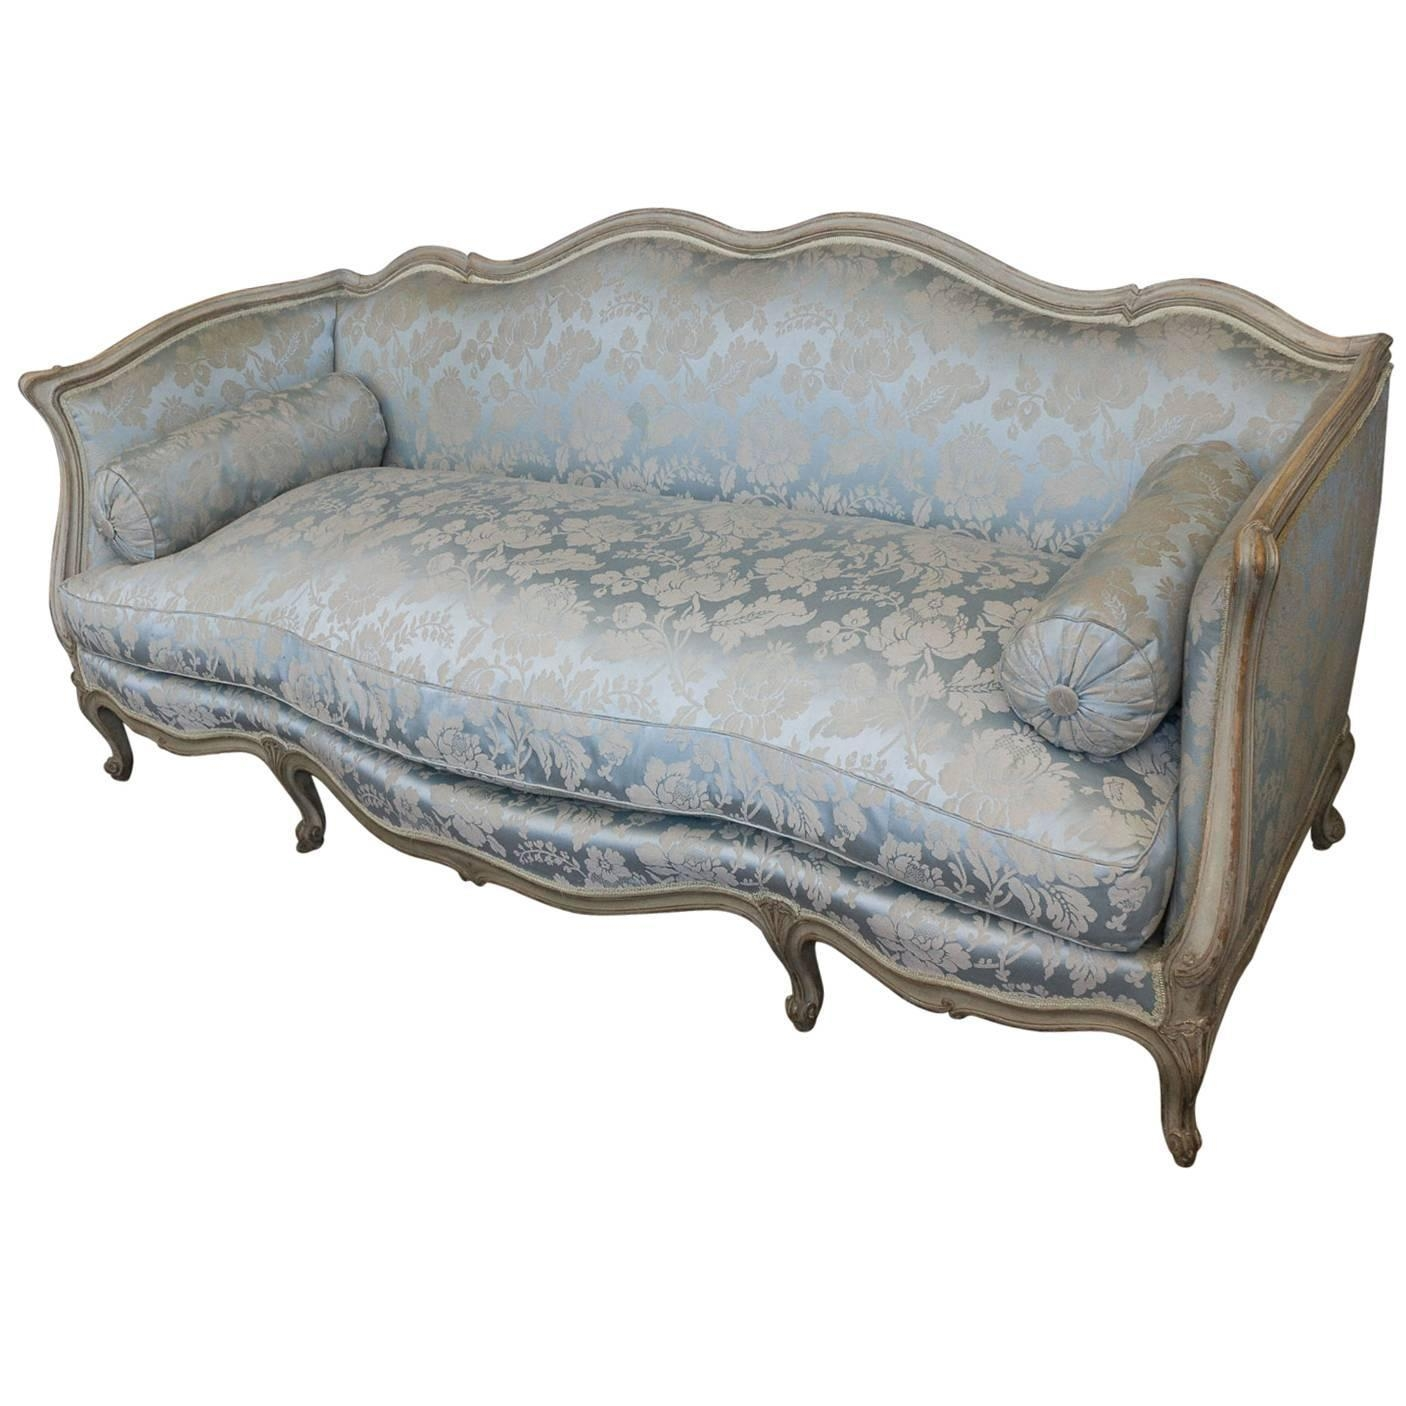 French Louis Xv Style Sofa For Sale At 1Stdibs With French Style Sofa (Image 6 of 20)